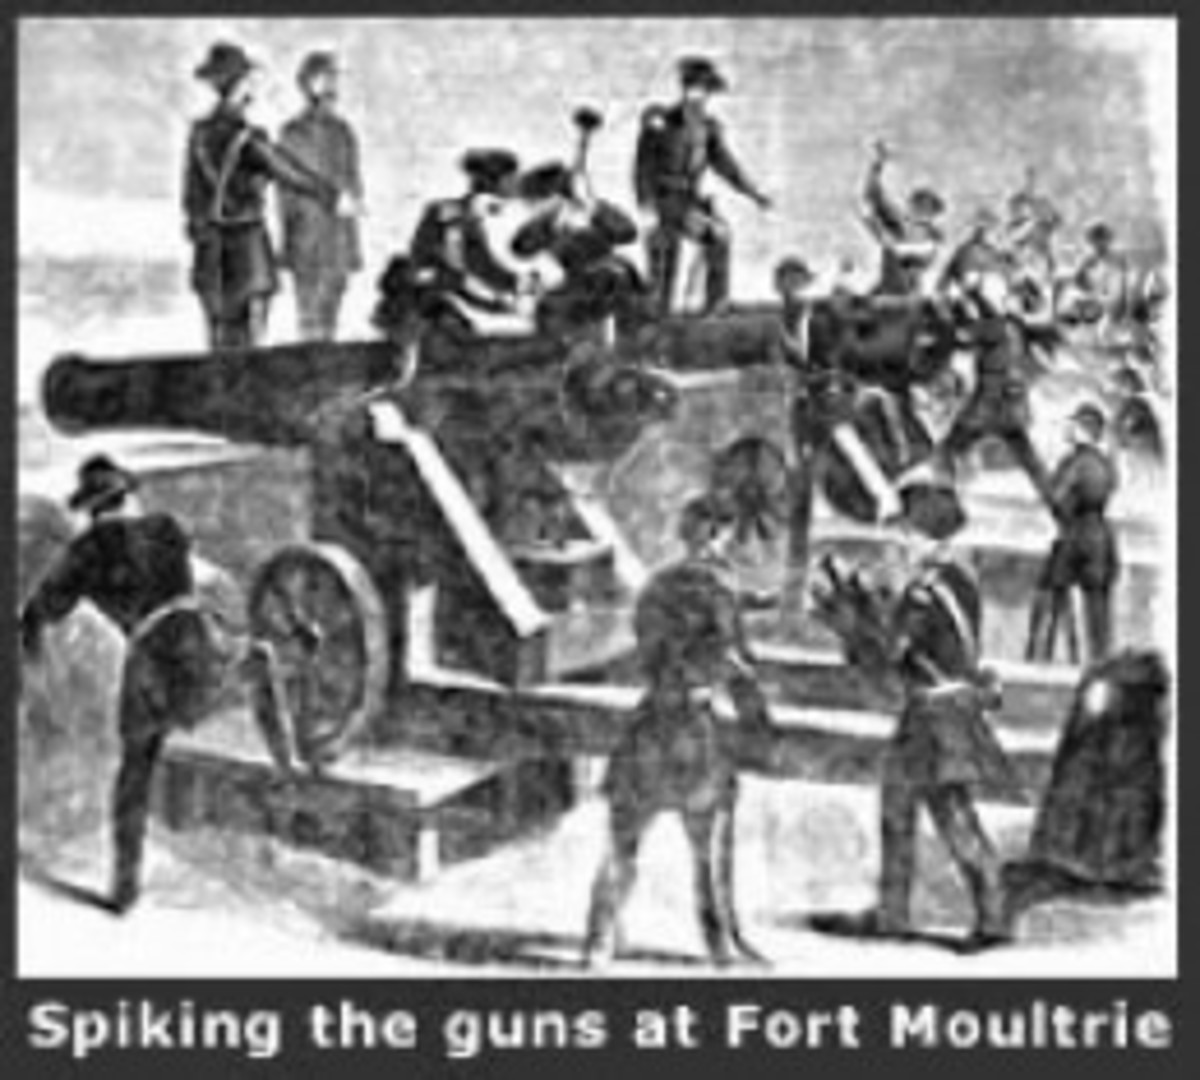 Sketch - Federal garrison troops abandon Fort Moultrie and spike the cannon